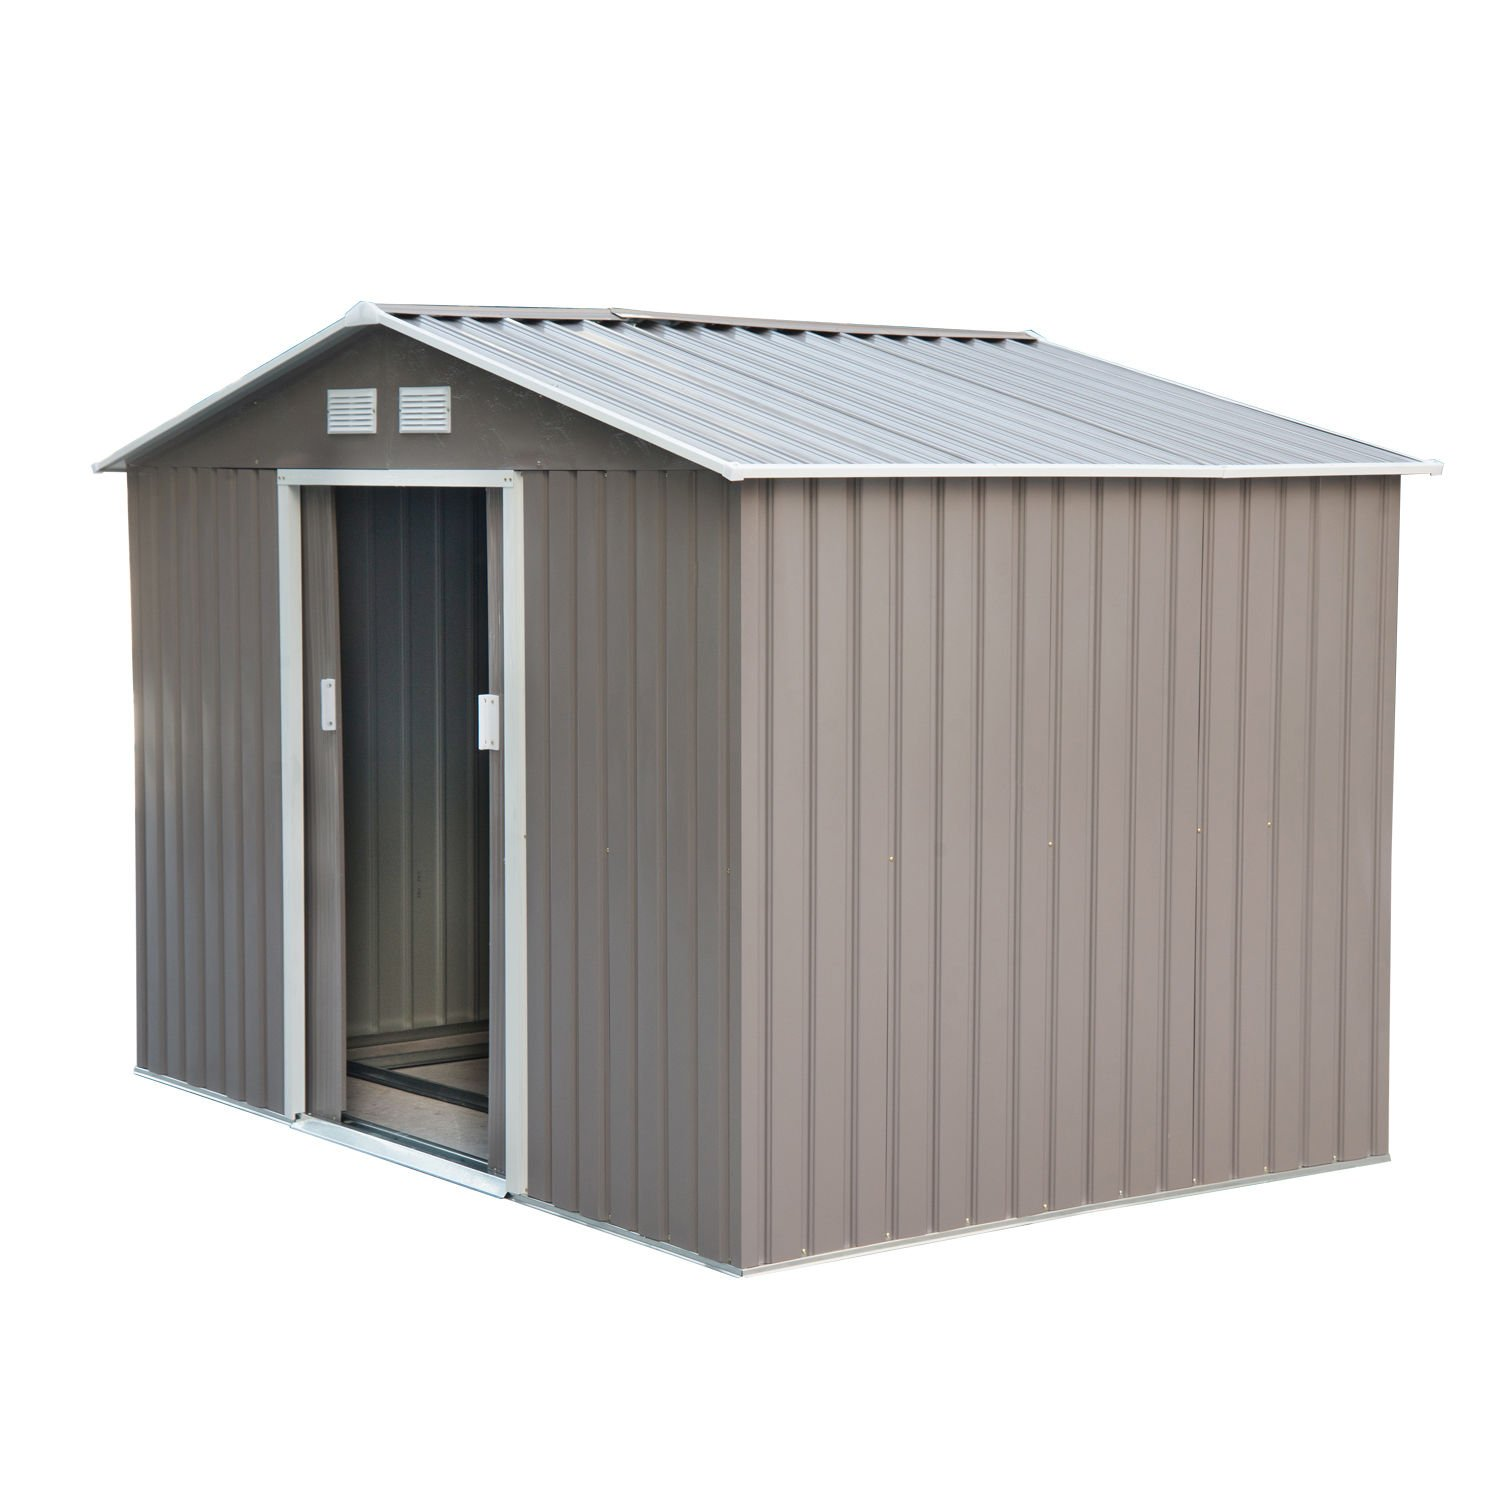 Outsunny 9' x 6' Outdoor Backyard Metal Garden Utility Storage Shed - Gray/White by Outsunny